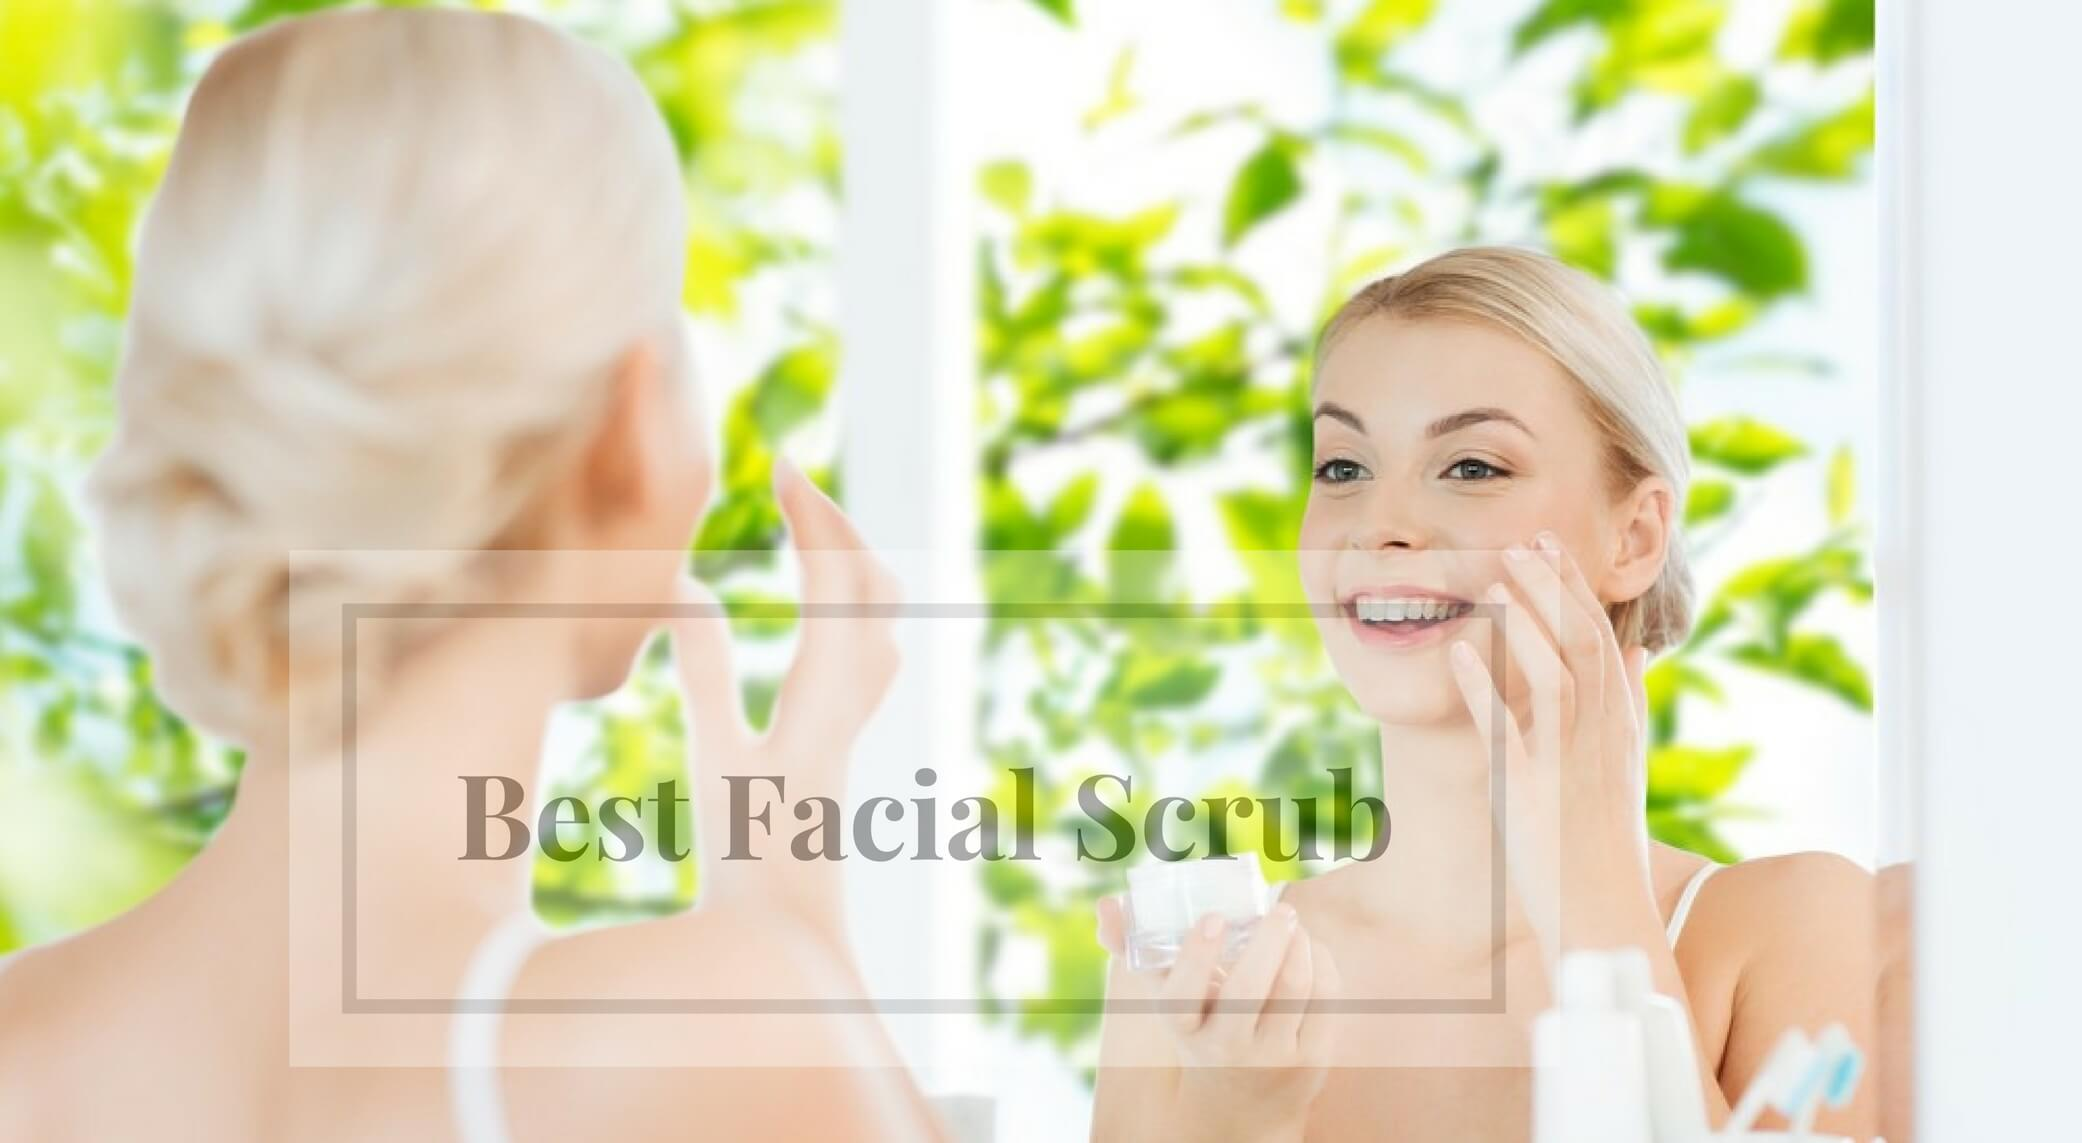 Best Facial Scrub